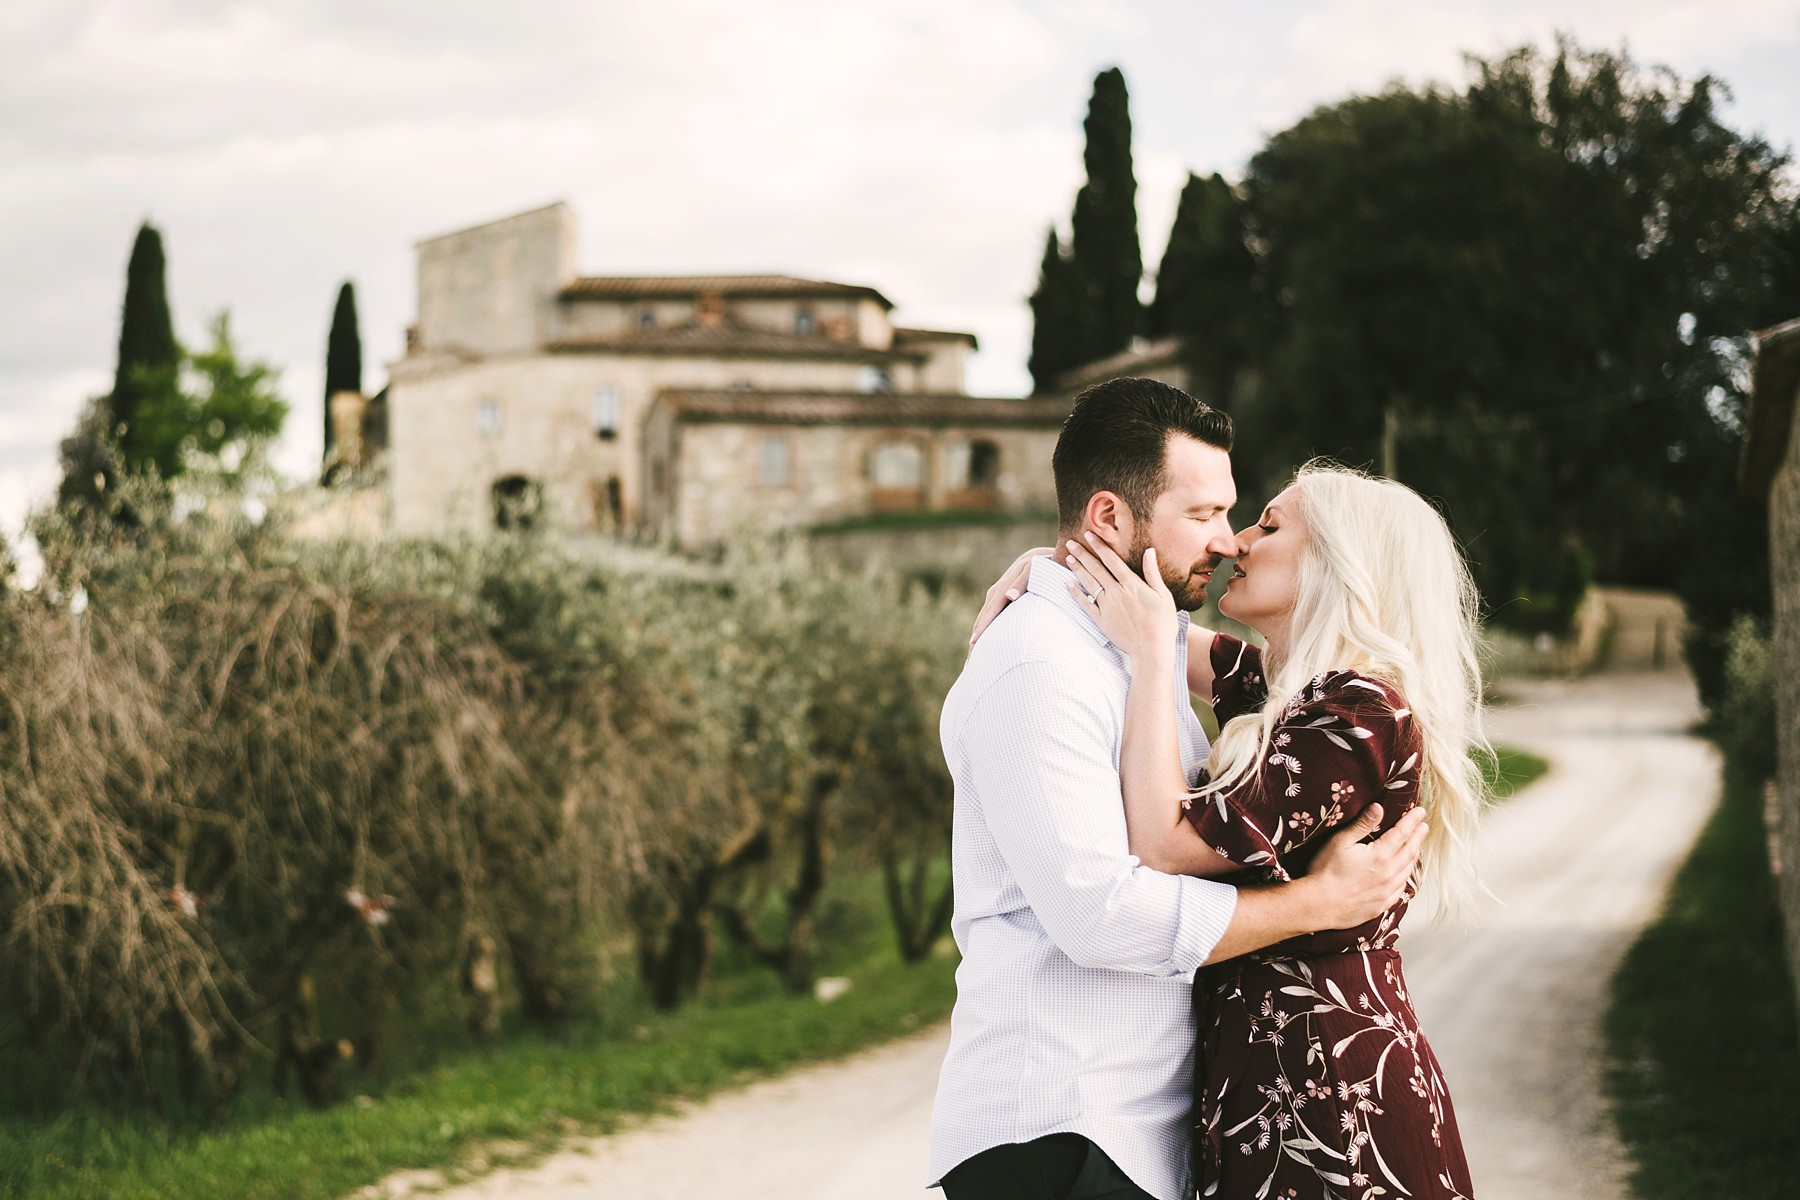 Dreamiest elegant and romantic honeymoon photo session in Tuscany countryside at Castello La Leccia